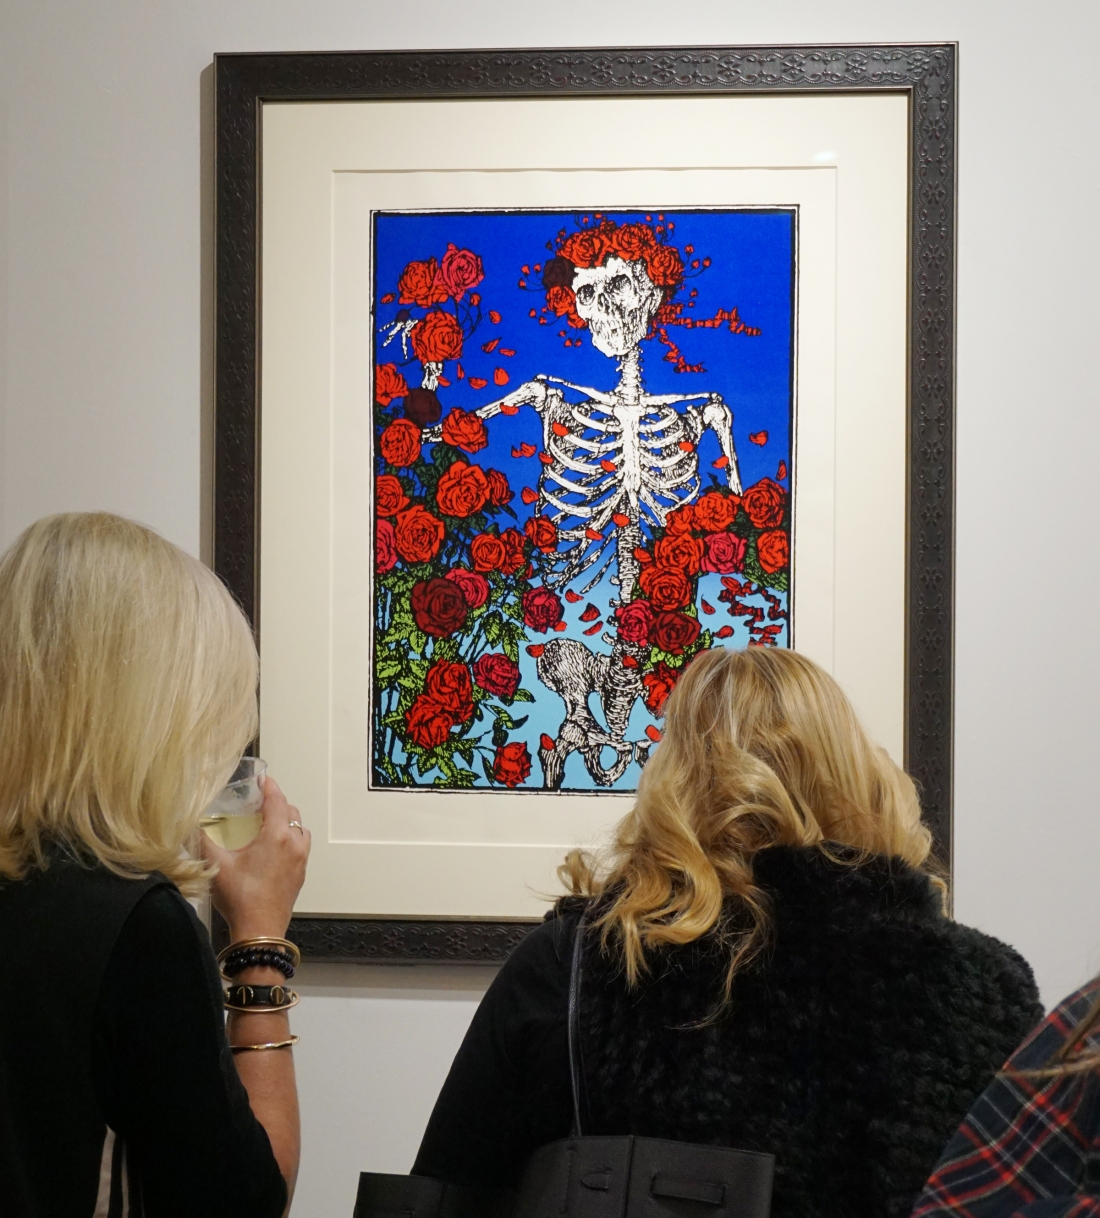 Selecting and Buying from Bahr Gallery